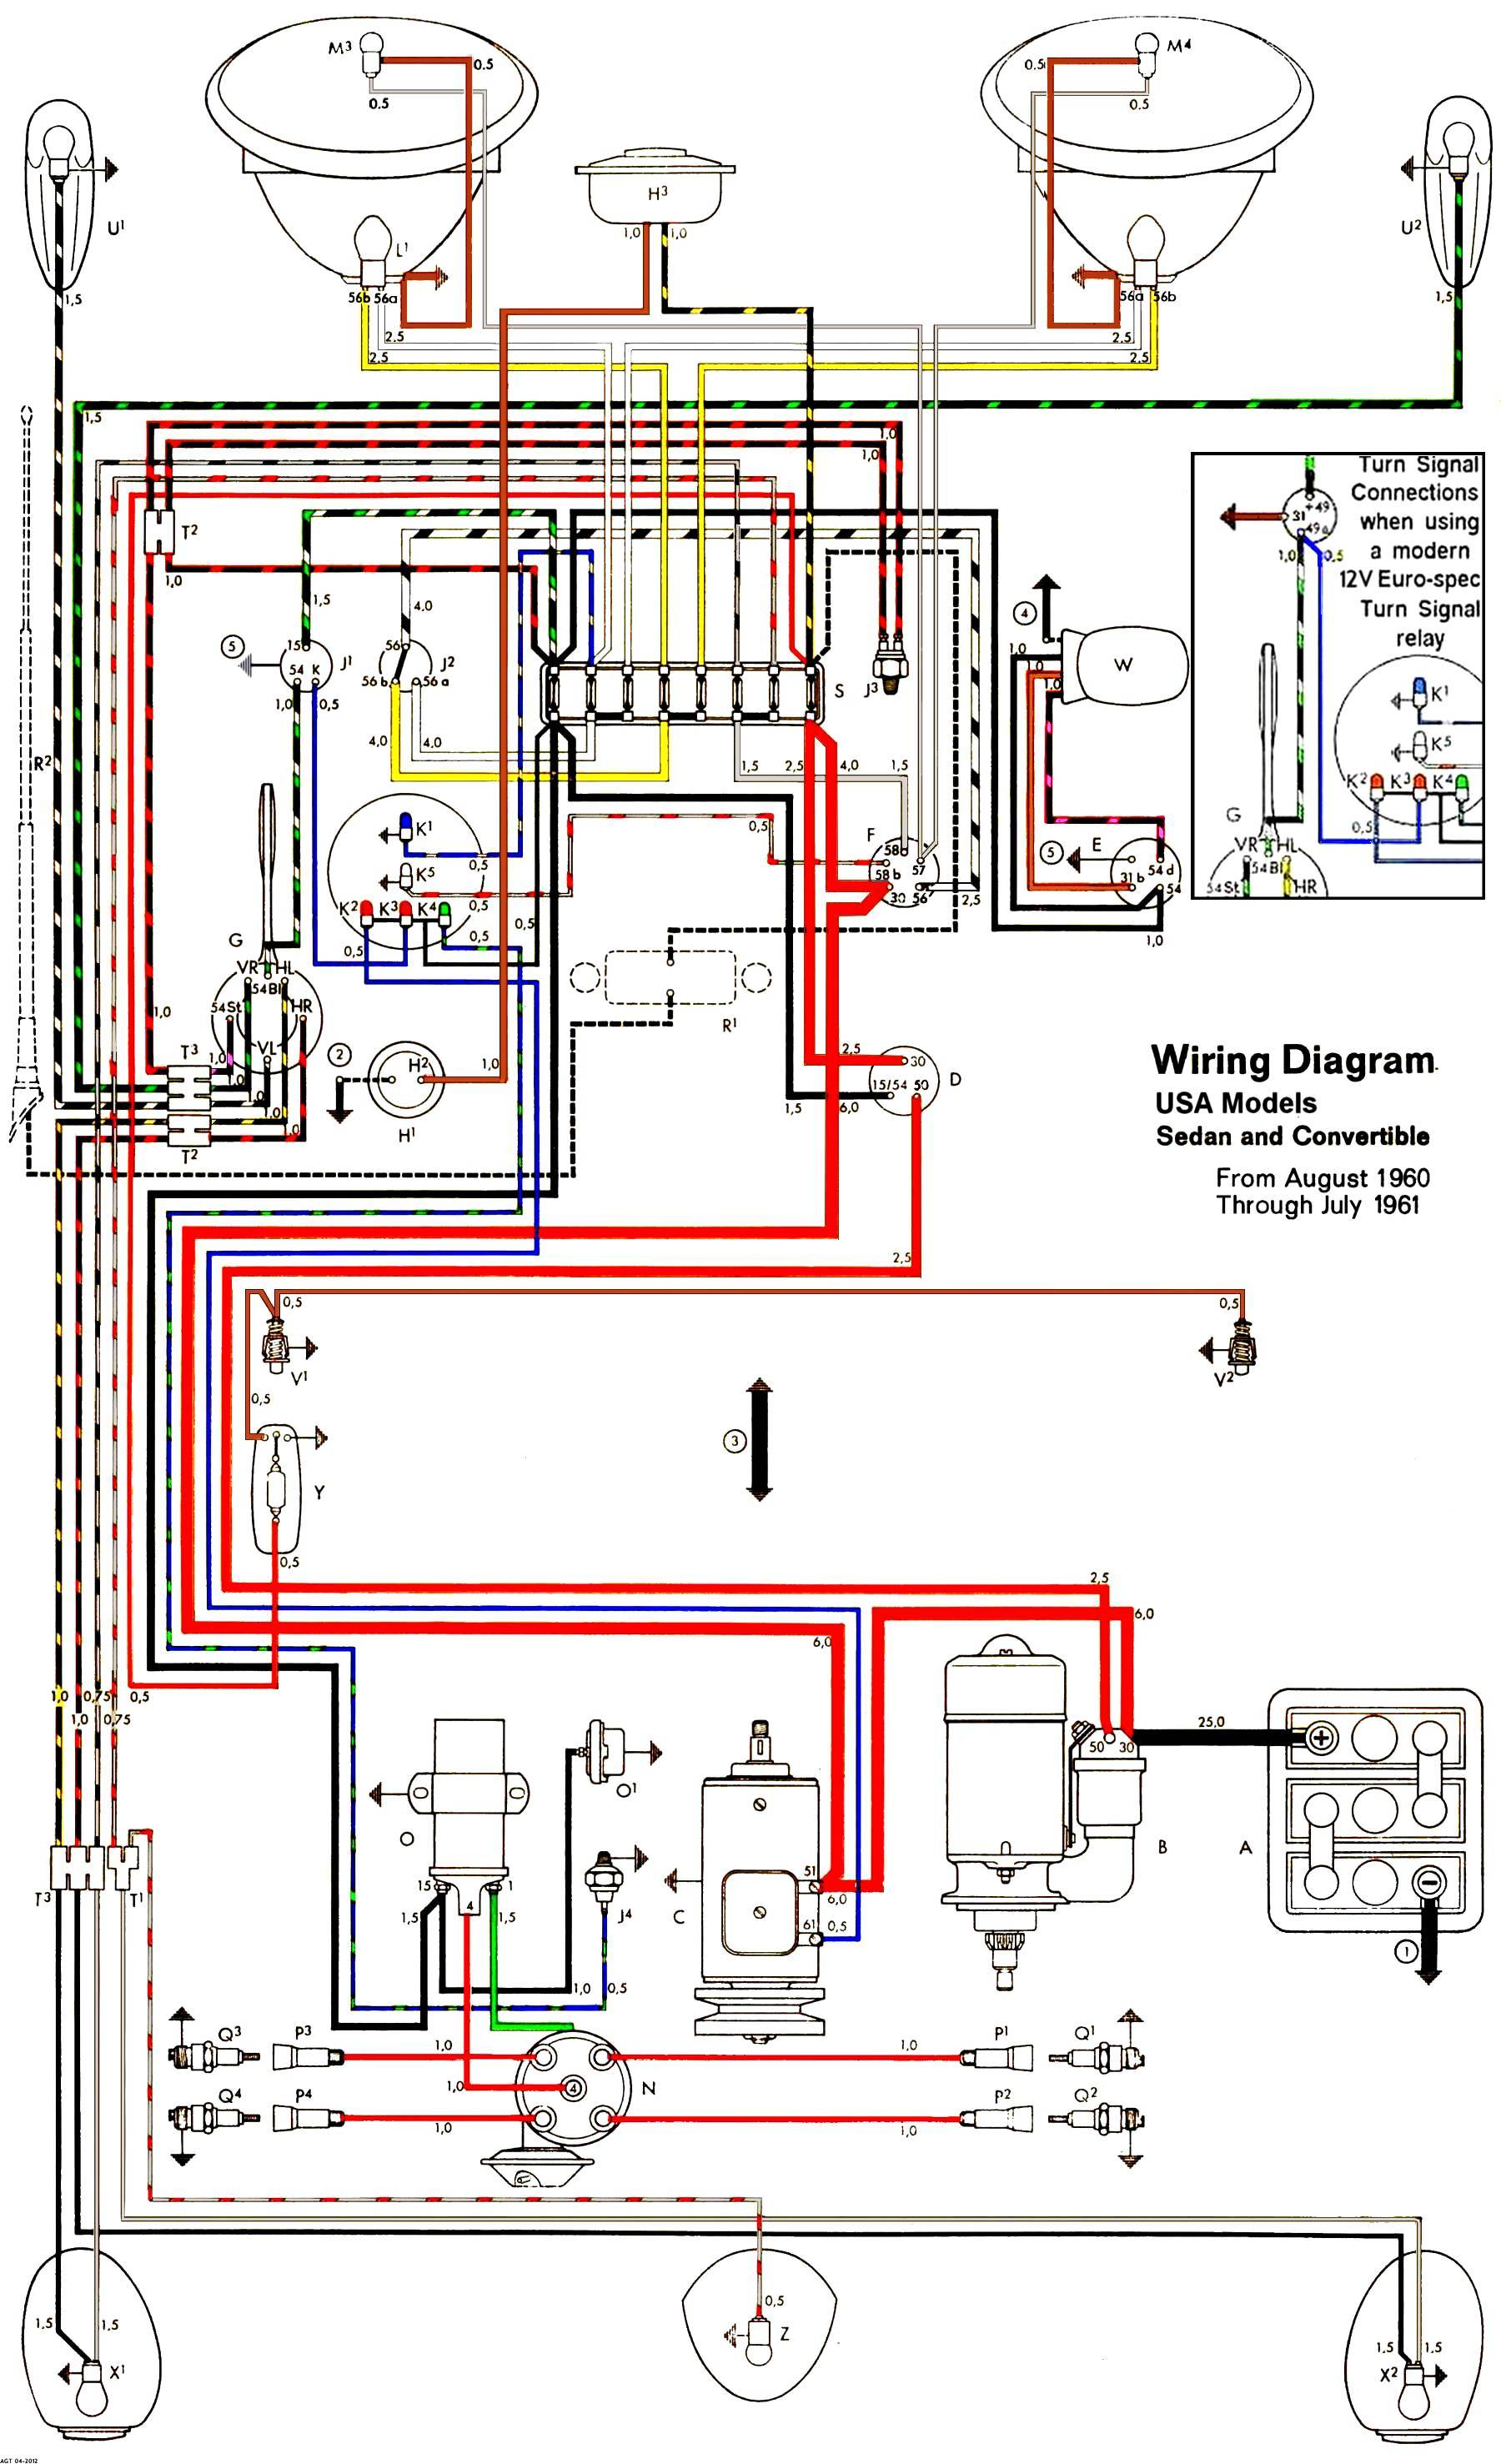 1977 Vw Beetle Ignition Wiring Diagram Wiring Diagram Ultimate2 Ultimate2 Musikami It